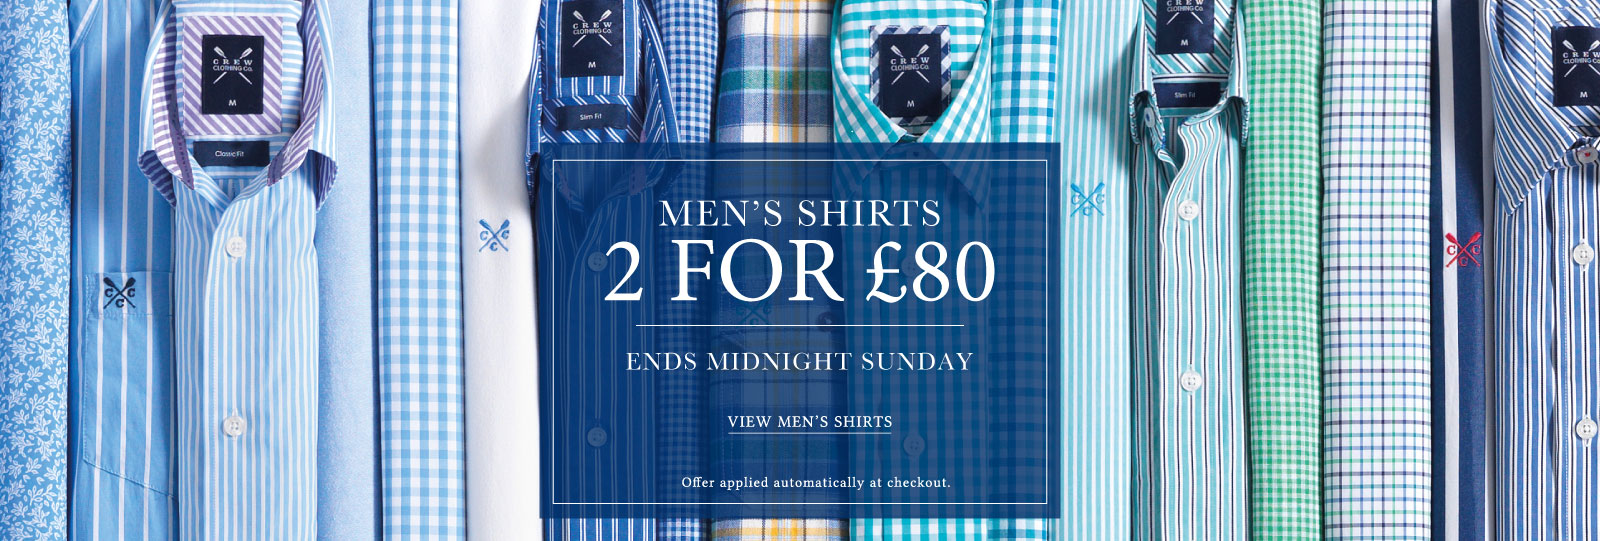 2 for £80 on Men's Shirts ends midnight Sunday